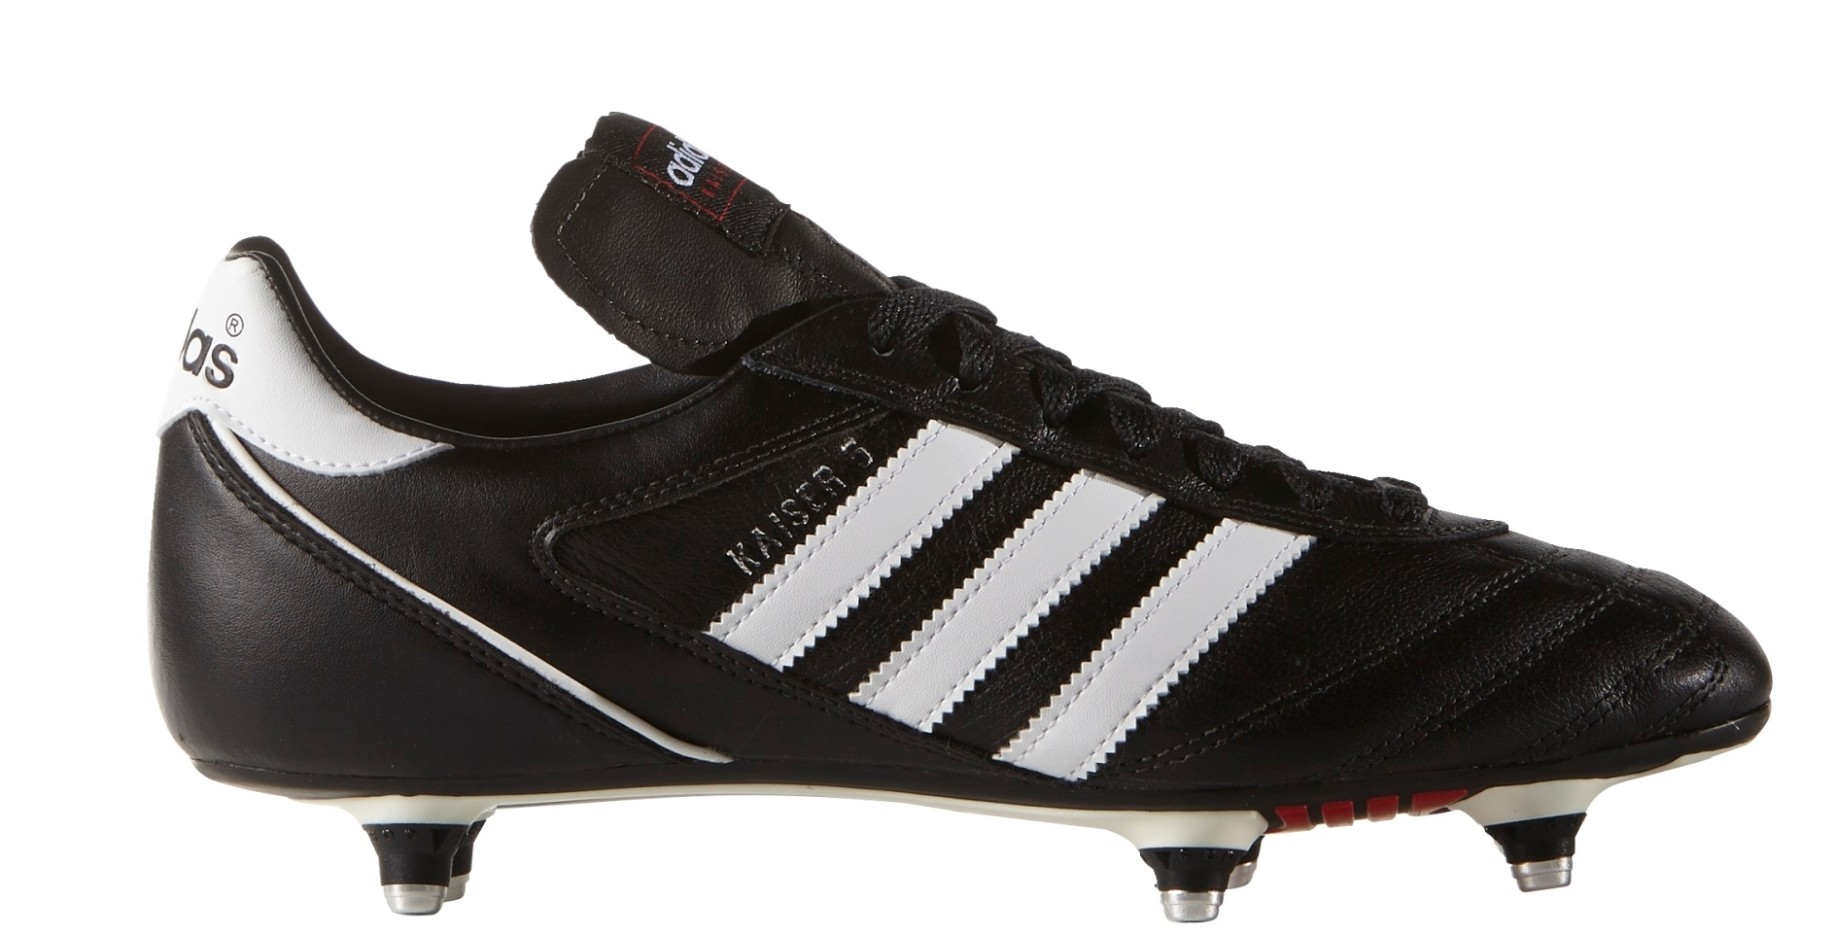 separation shoes bd1e0 2ebf1 Adidas Football boots Kaiser 5 Cup SG colore Black White - Adidas -  SportIT.com